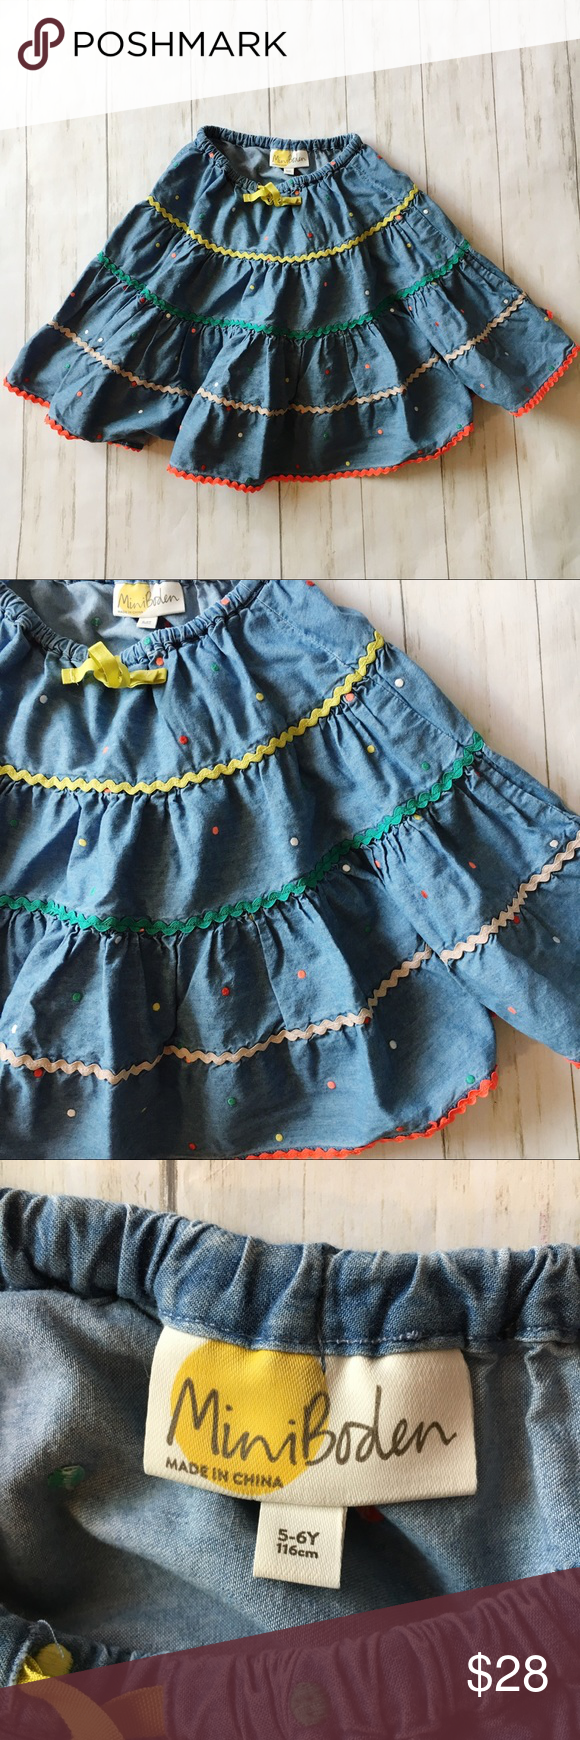 Mini Boden Chambray Embroidered Dot Twirl Skirt Mini Boden  Twirl Skirt Size 5-6 Years Blue Chambray with Multi Color Embroidered Polka Dots Multi Color Zig Zag Detail  Elastic Waistband  Drawstring  Machine wash  100% Cotton  Waist 8.5 across, length 15  Pre owned, excellent condition. No holes or stains.  |All measurements are approximate|  (0807) Mini Boden Bottoms Skirts #twirlskirt Mini Boden Chambray Embroidered Dot Twirl Skirt Mini Boden  Twirl Skirt Size 5-6 Years Blue Chambray with Mu #twirlskirt